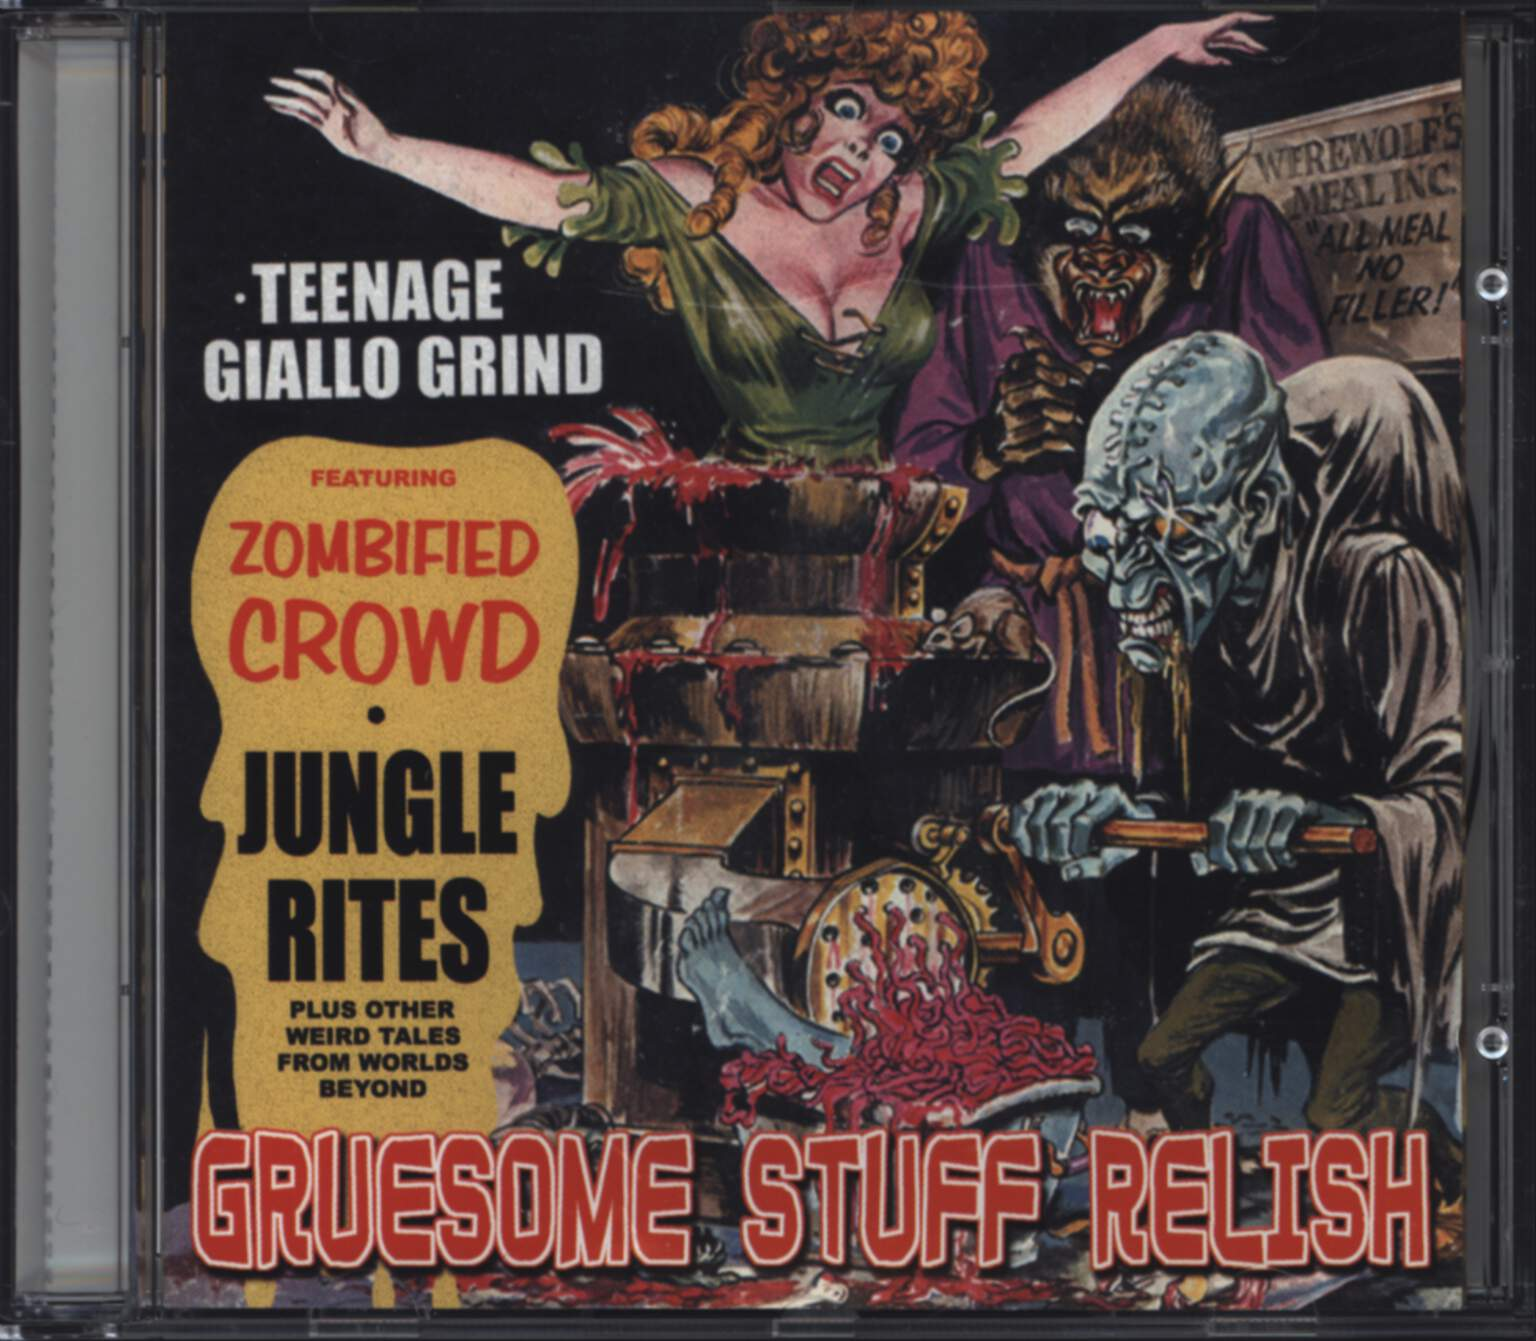 Gruesome Stuff Relish: Teenage Giallo Grind, CD